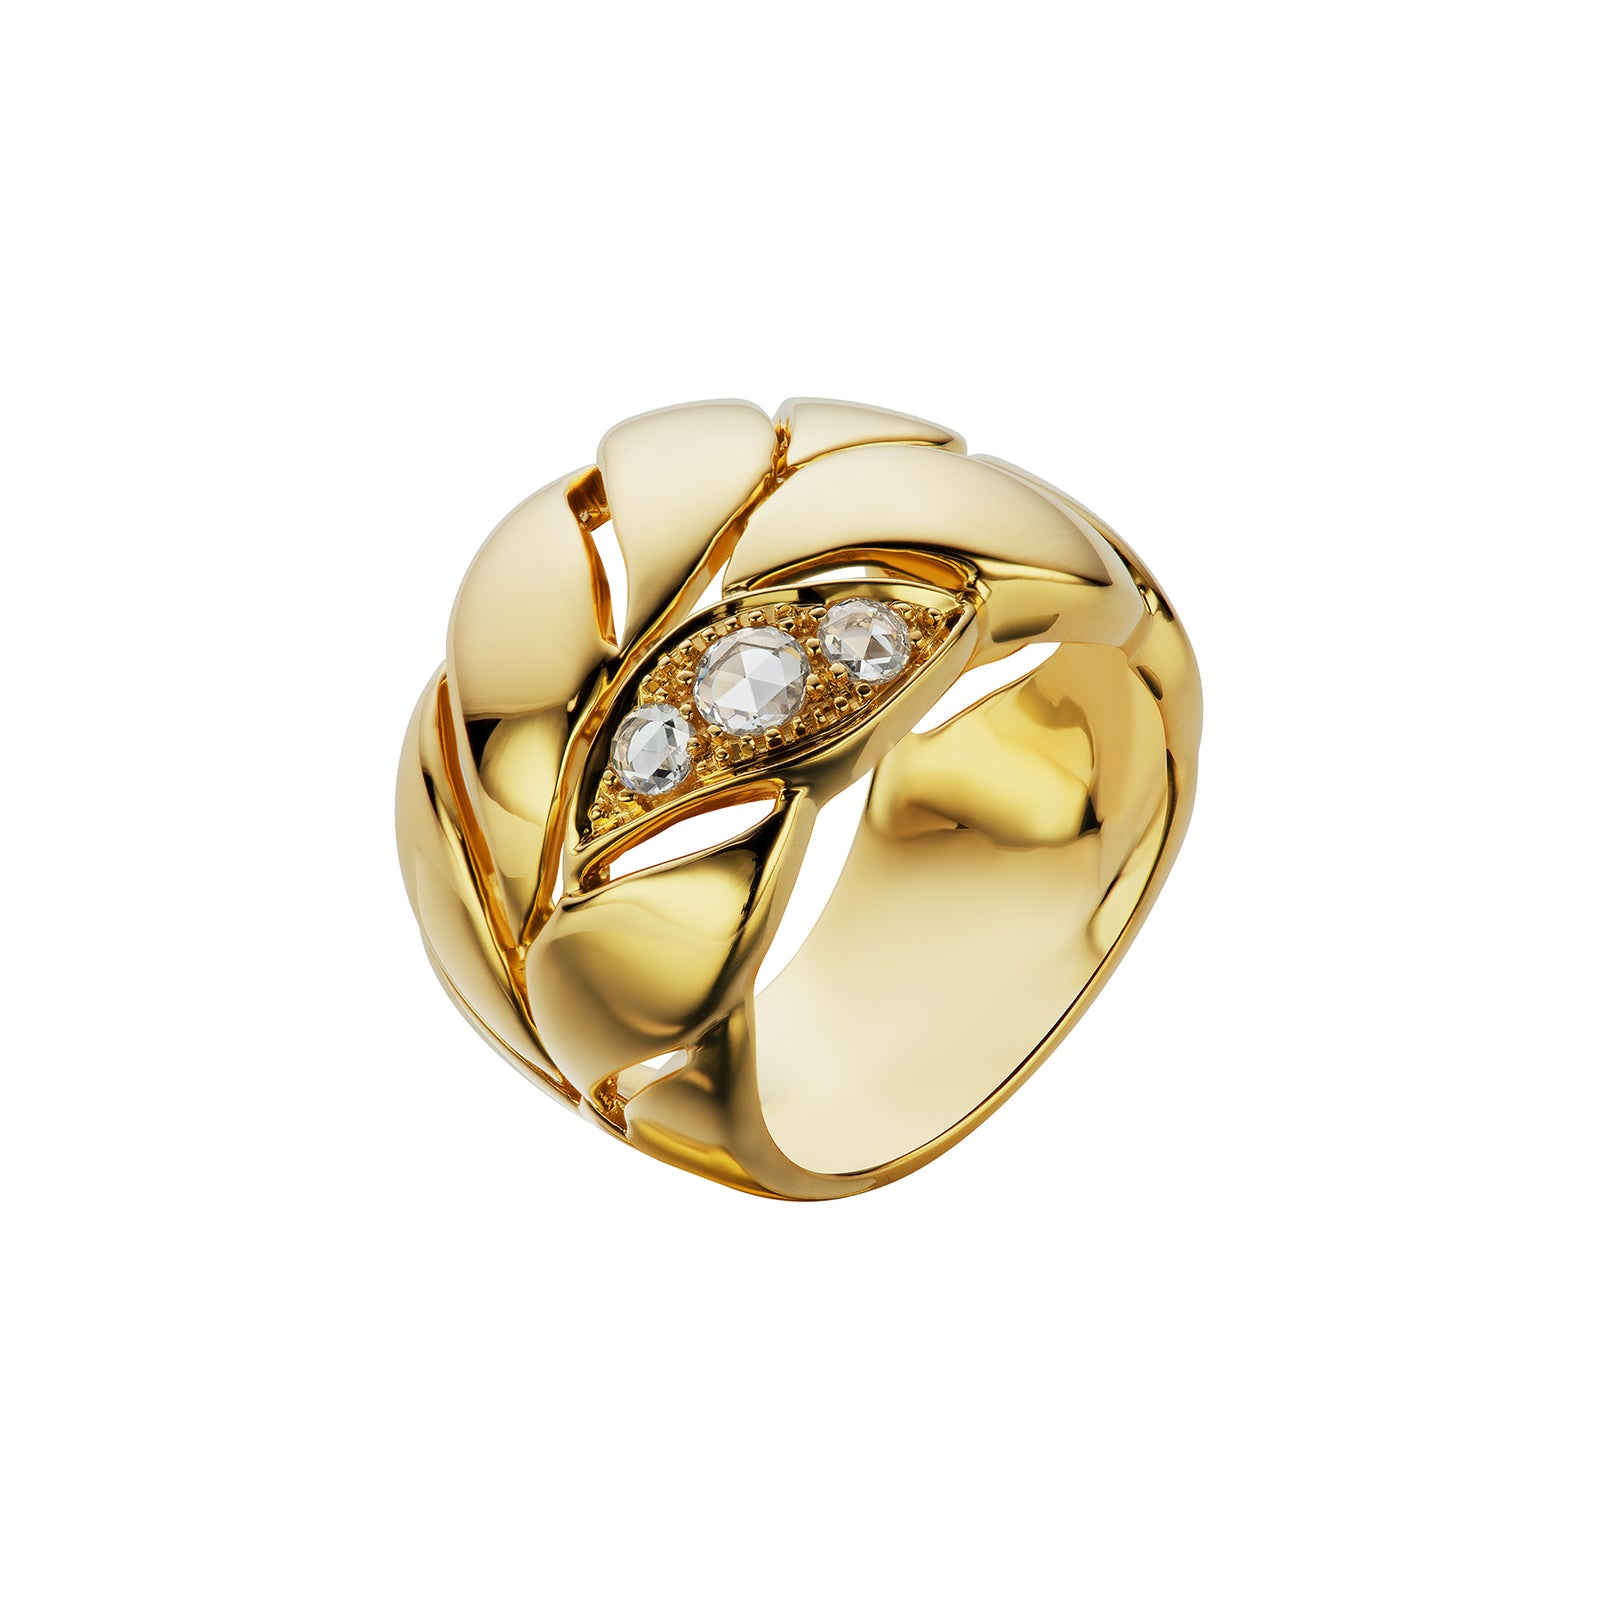 Maria Canale Petal Ring - Diamond - Rings - Broken English Jewelry